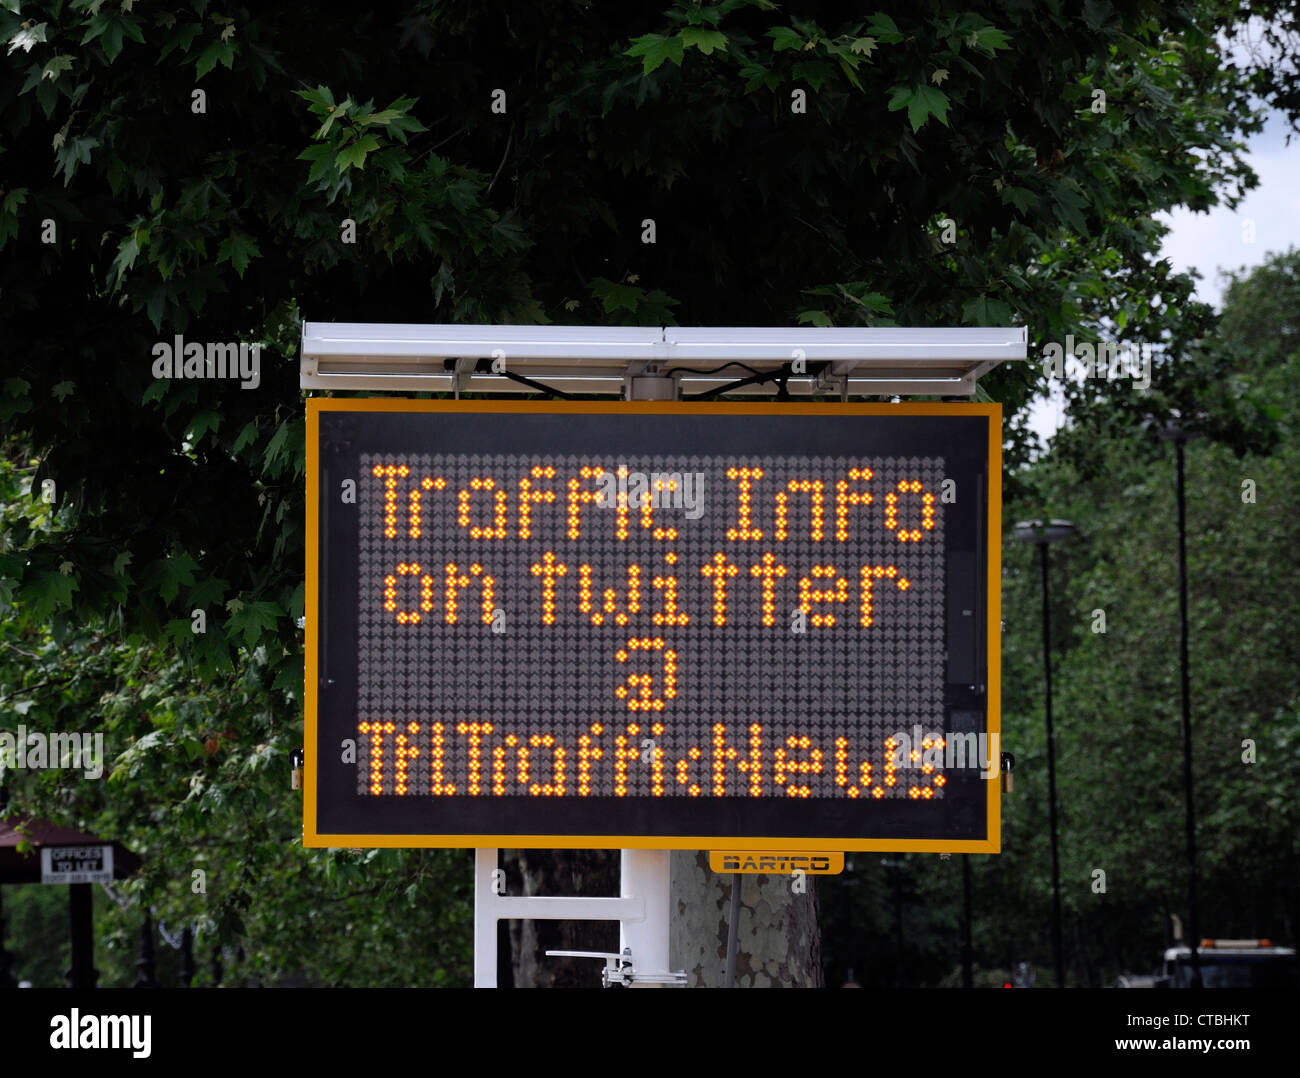 Traffic for London TFL LED road sign indicate indicating traffic news information updates twitter # TFLTrafficNews - Stock Image